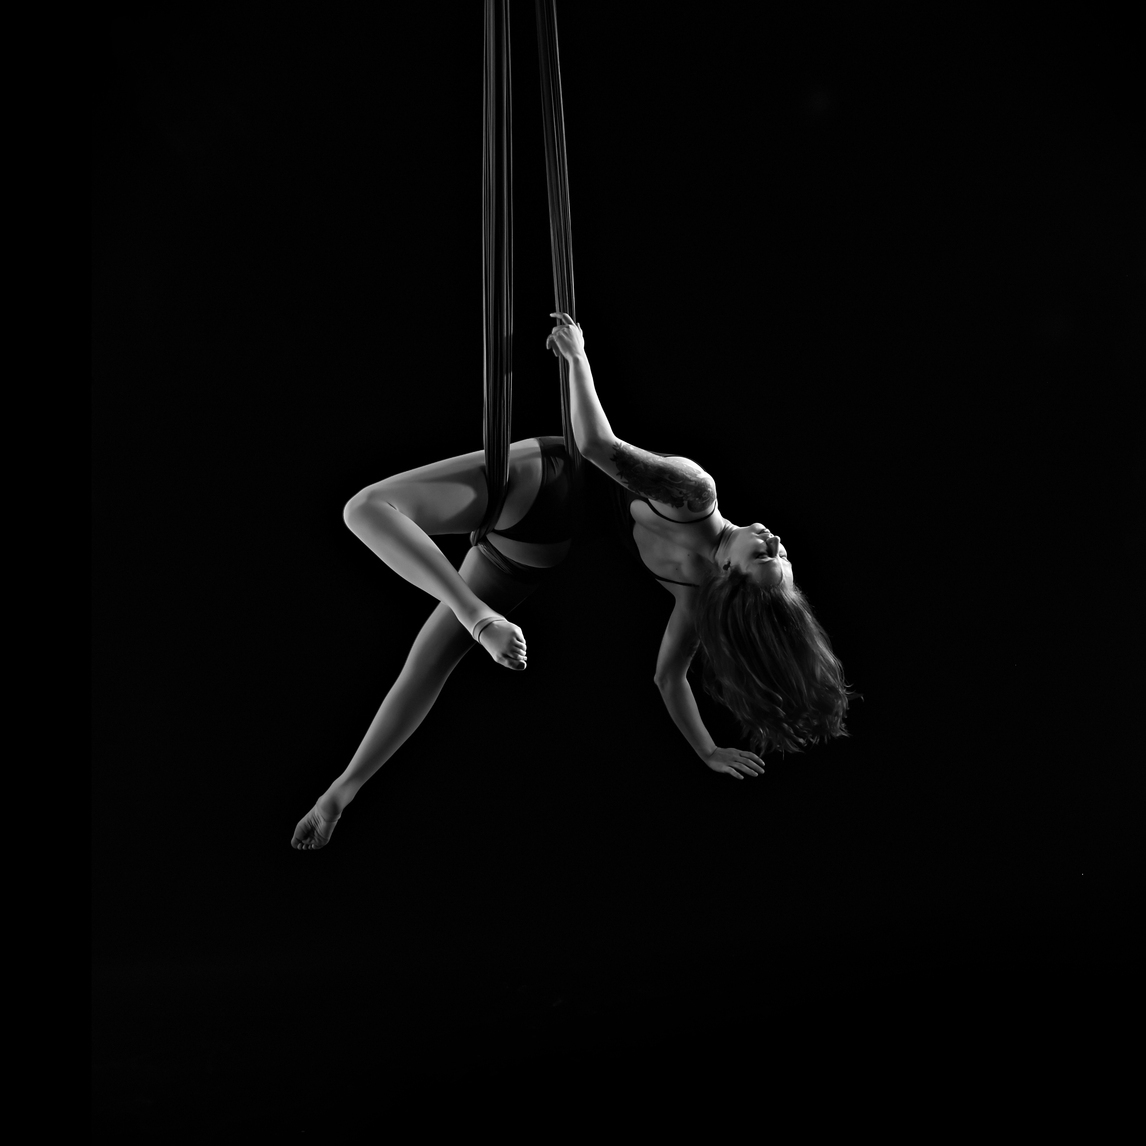 Aerial Hammock/Sling - A single aerial silk rigged as a loop from a single central point. Artists alternate between poses and sequenced wraps to move up and down the loop. Can be rigged from a lower height, and is ideal for champagne pouring services.